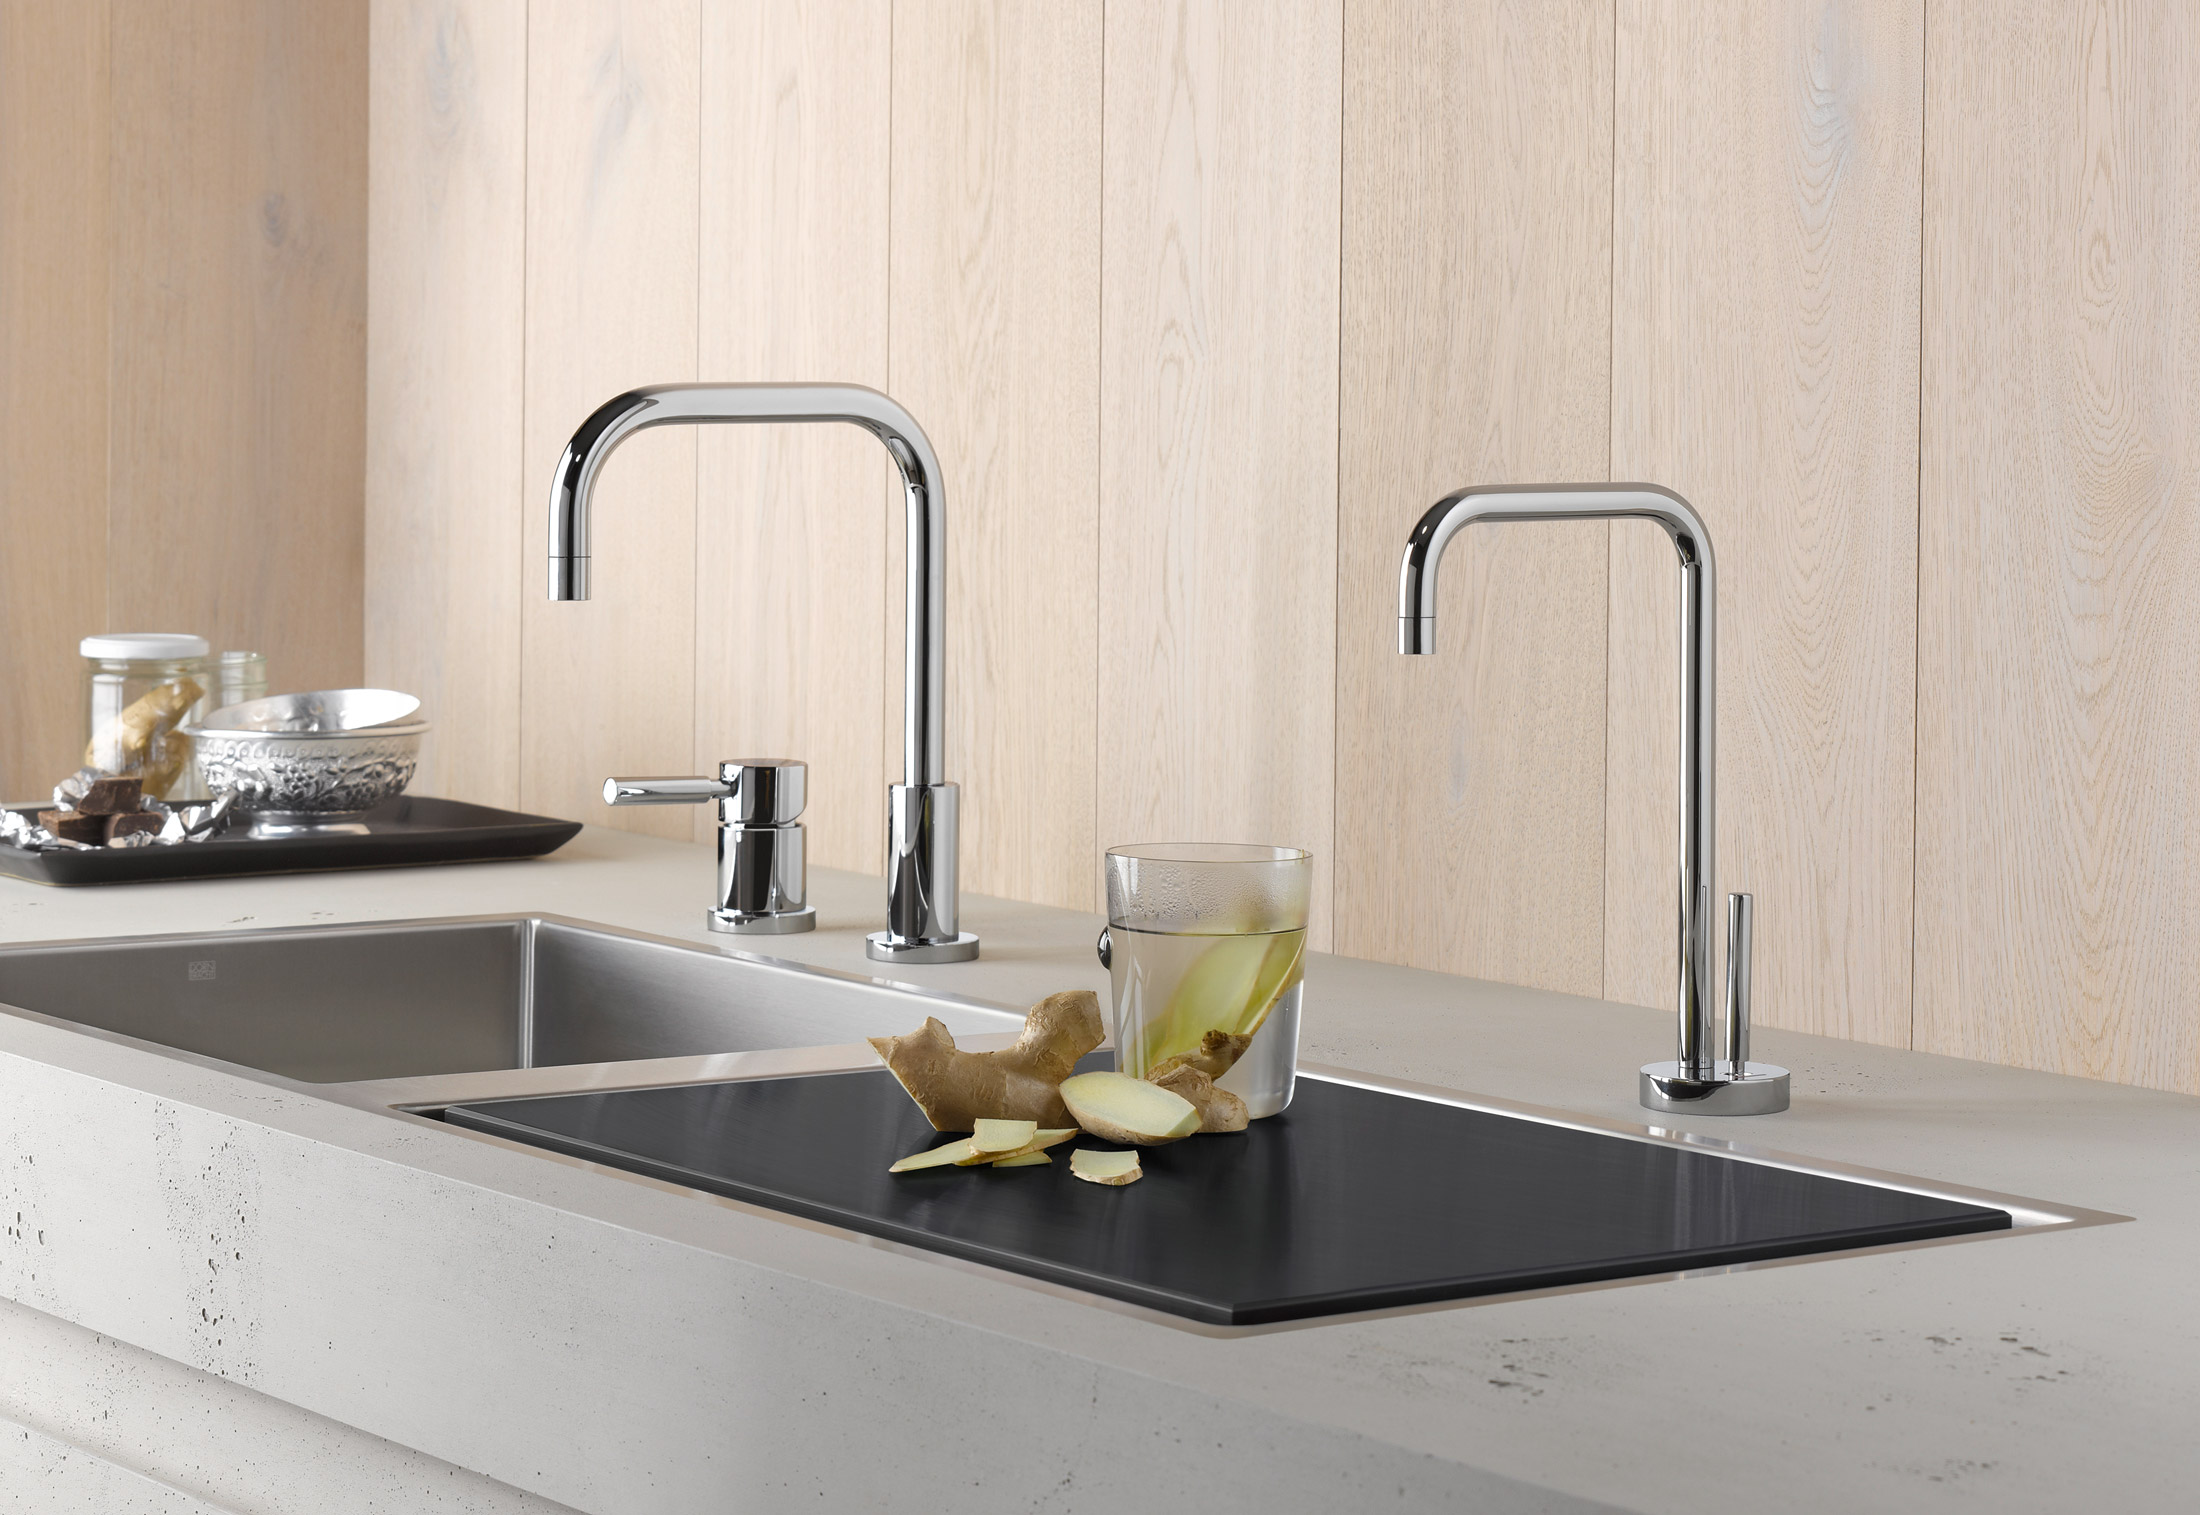 design dispenser water instant lines kitchen to how a faucets home sink install dijizz inspiring faucet and hot